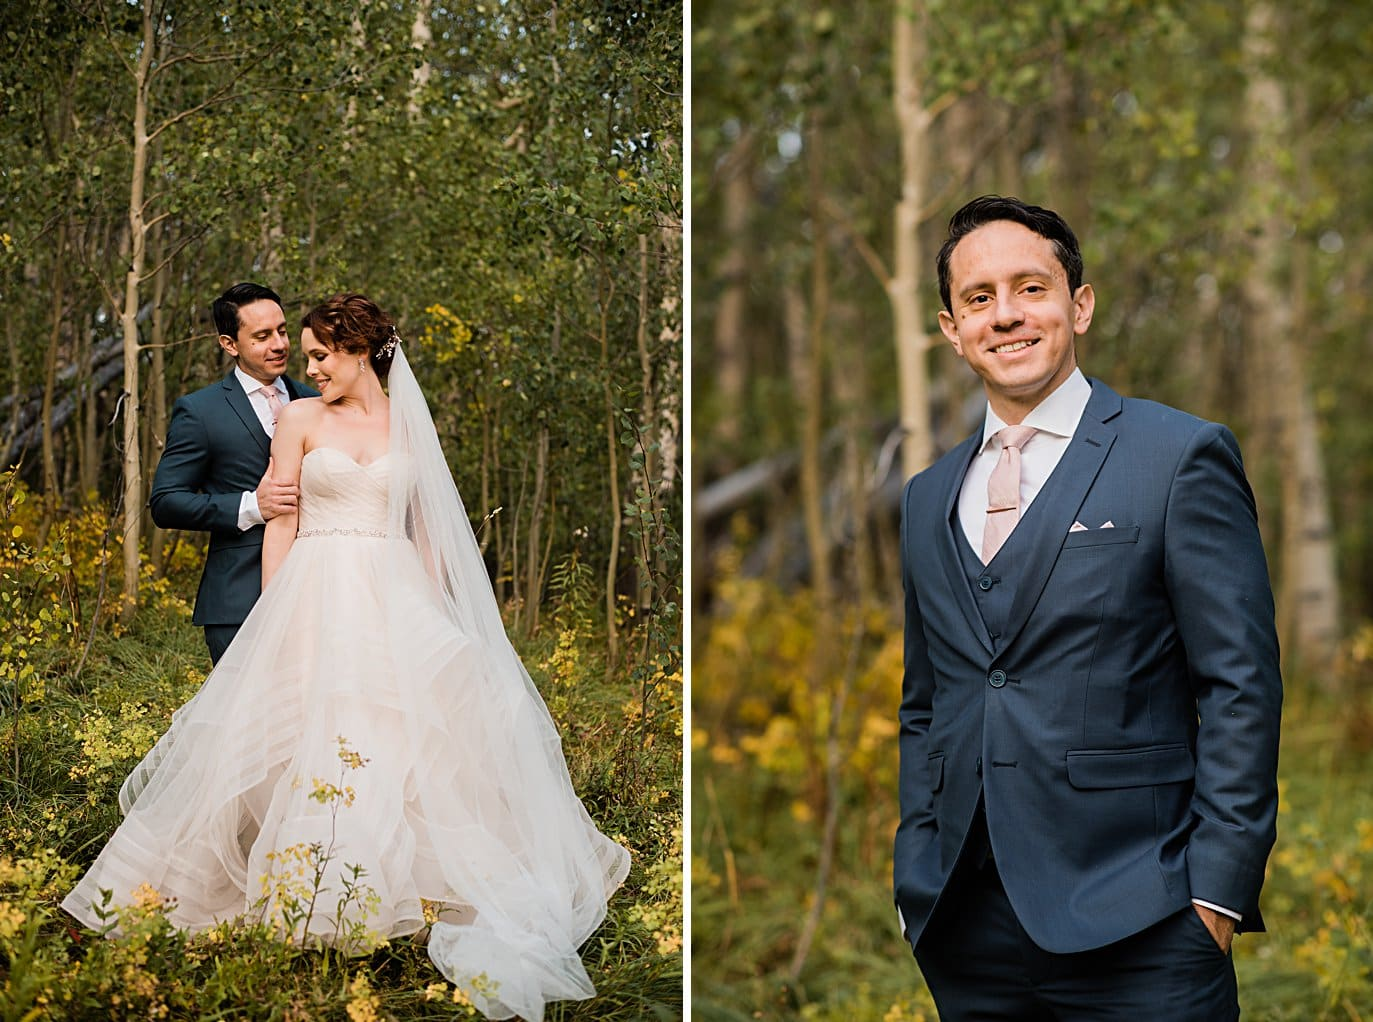 bride and groom in fall aspen trees at fall Aspen wedding by Snowmass wedding photographer Jennie Crate